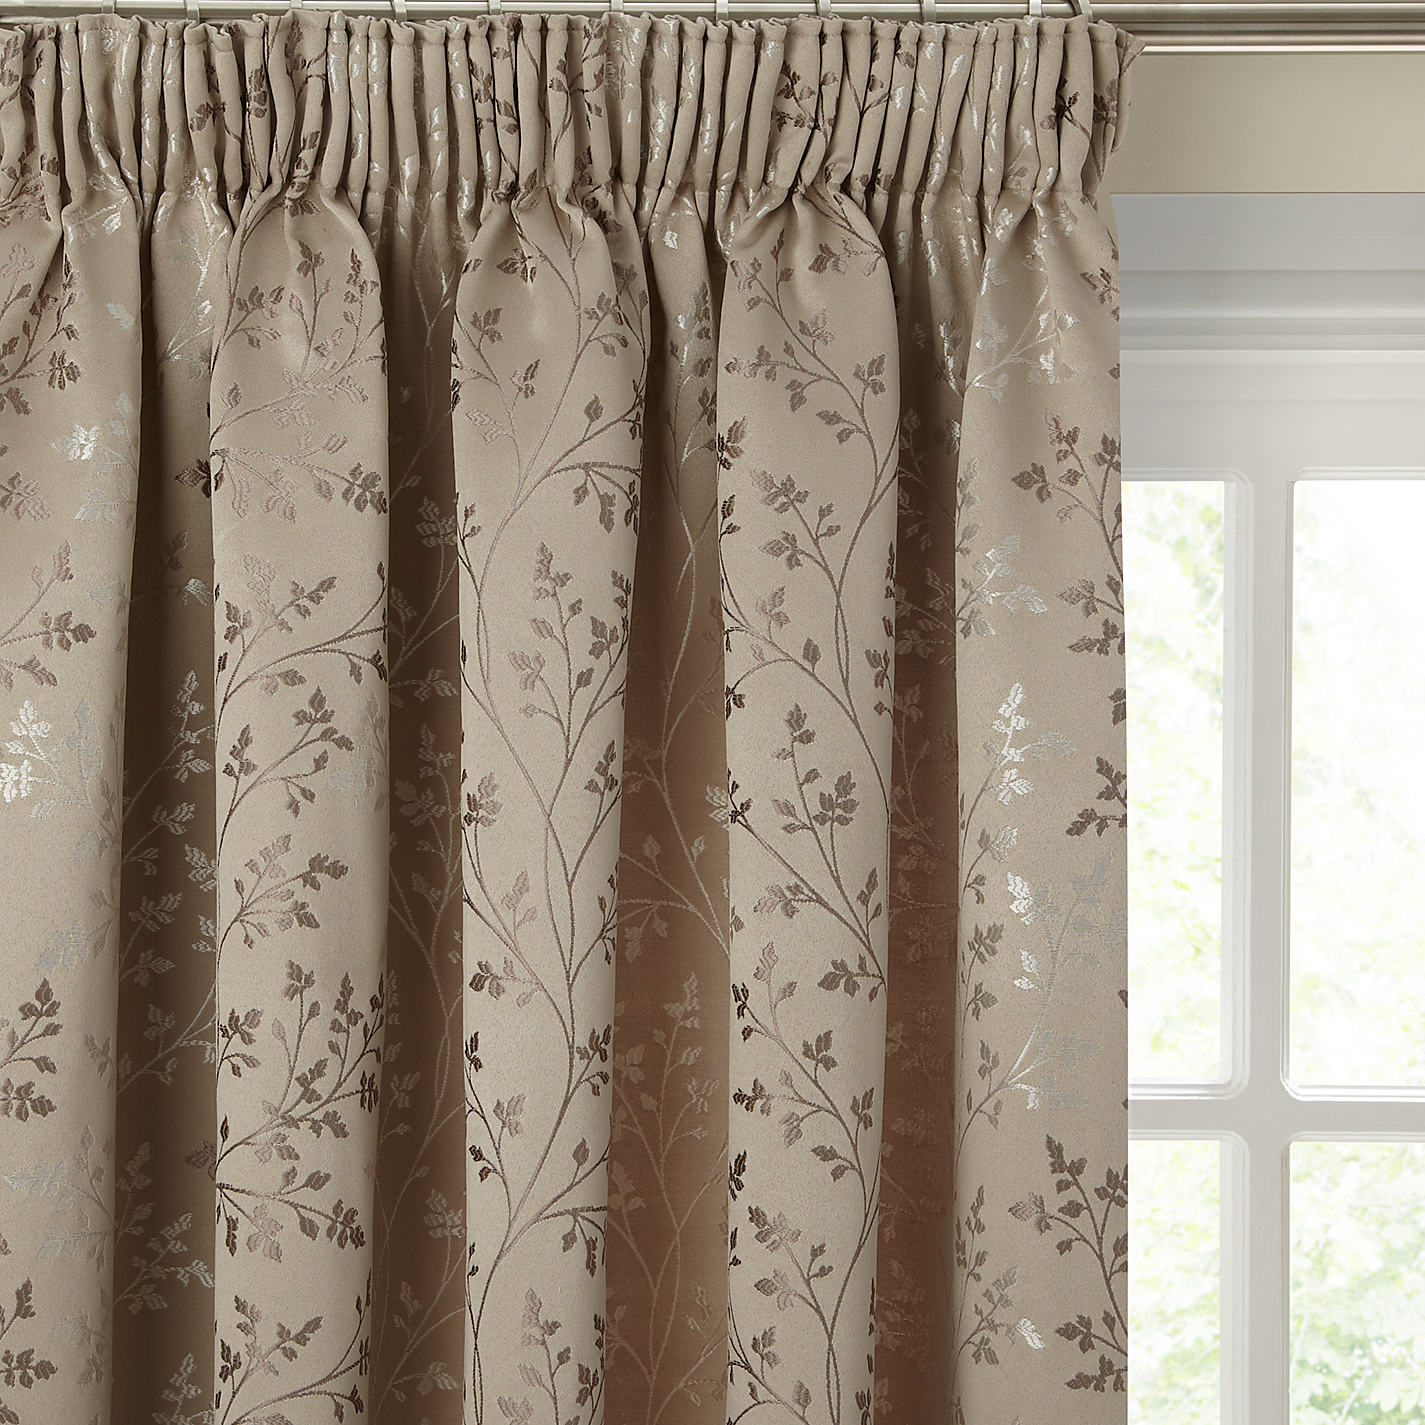 buy john lewis botanical field lined pencil pleat curtains online at  johnlewis.com bqwxnzx